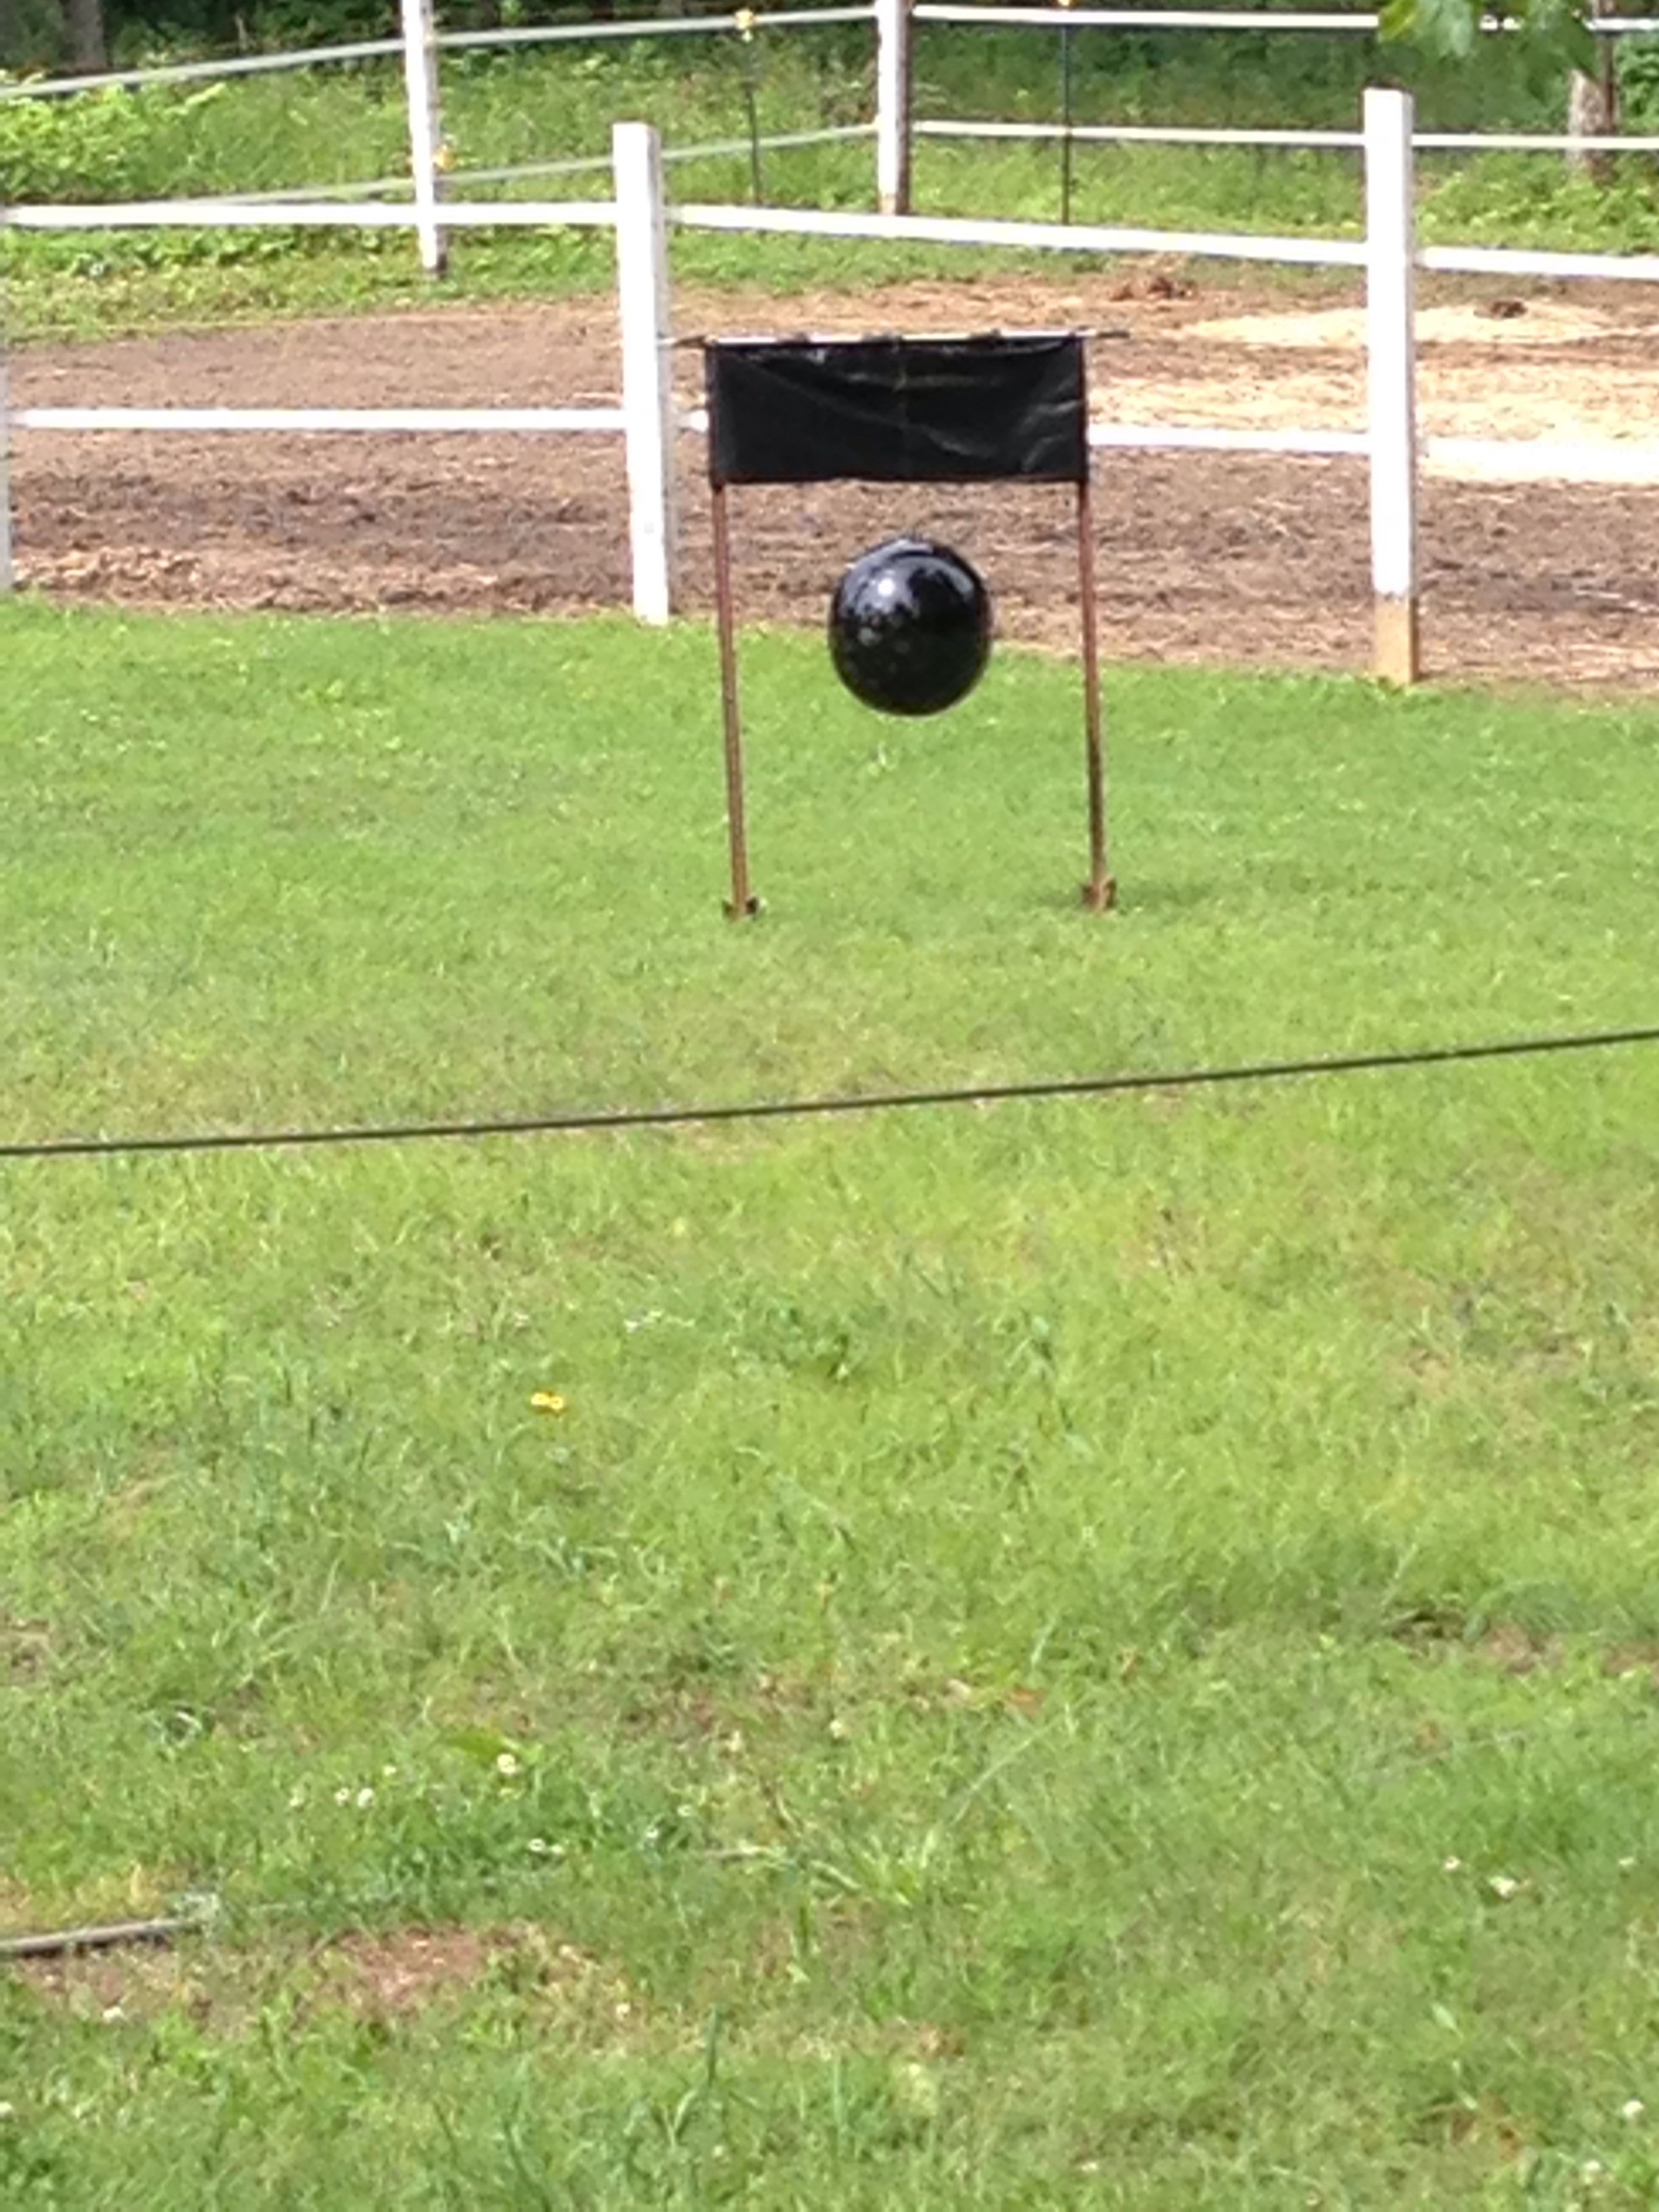 Horsefly Trap Spray Paint A Beach Ball Black And Cover With Tanglefoot Buy It At Any Hardware Store I Swear This Wor Horsefly Trap Diy Fly Trap Horse Fly